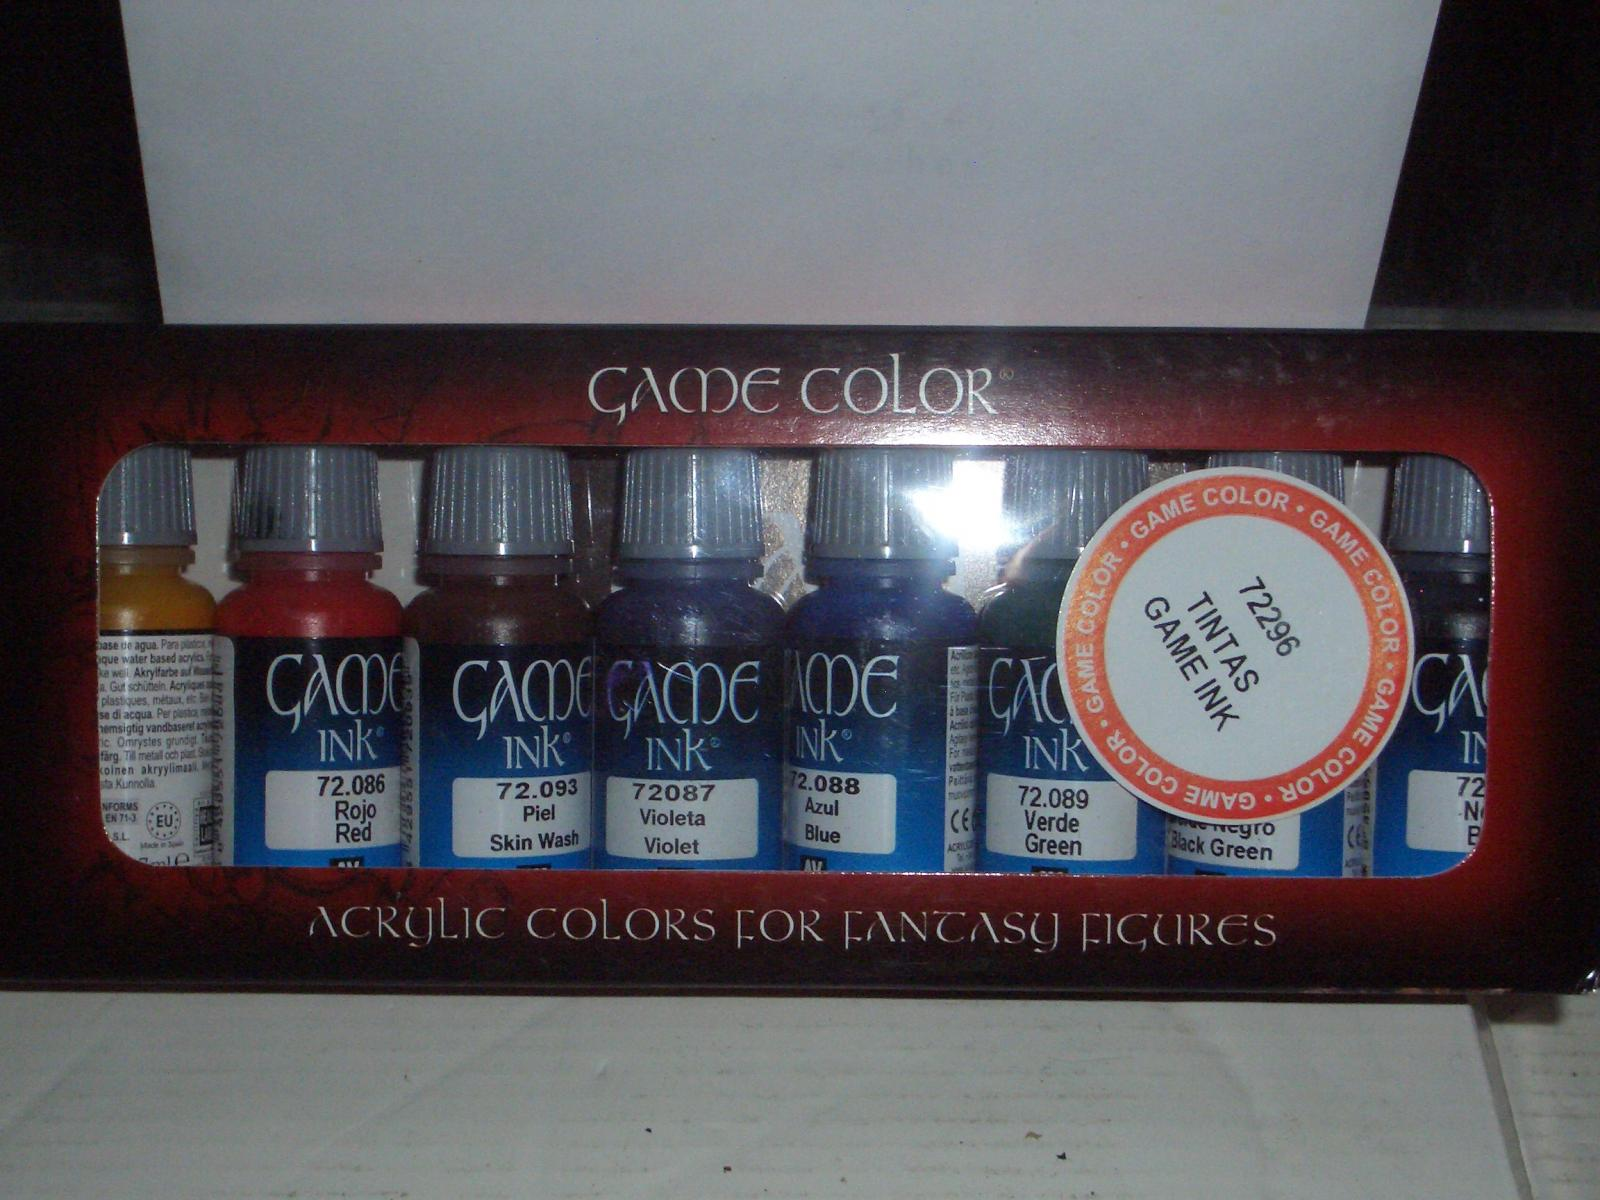 Game color vallejo - It Comprises 8 Colours In Dropper Bottles As Well As A Handy Colour Guide For The Vallejo Game Colour Range This Even Has A Comparison Chart For Old Gw